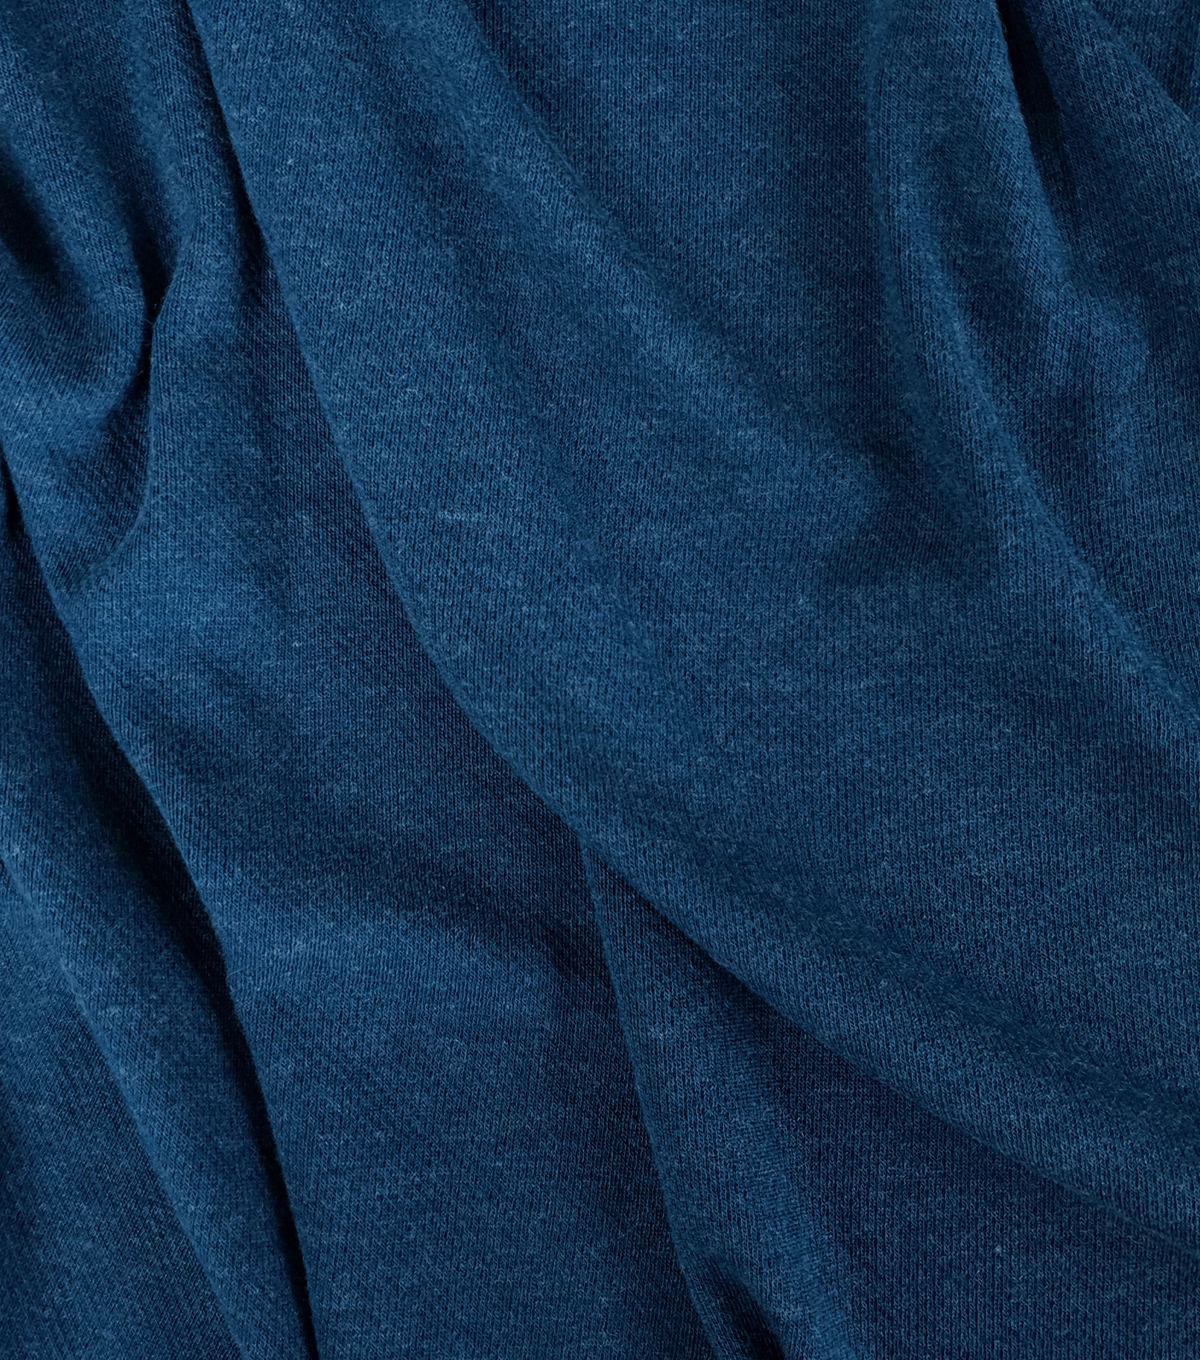 Loungeletics Performance Wool Blend Fabric-Heather Majolica Blue